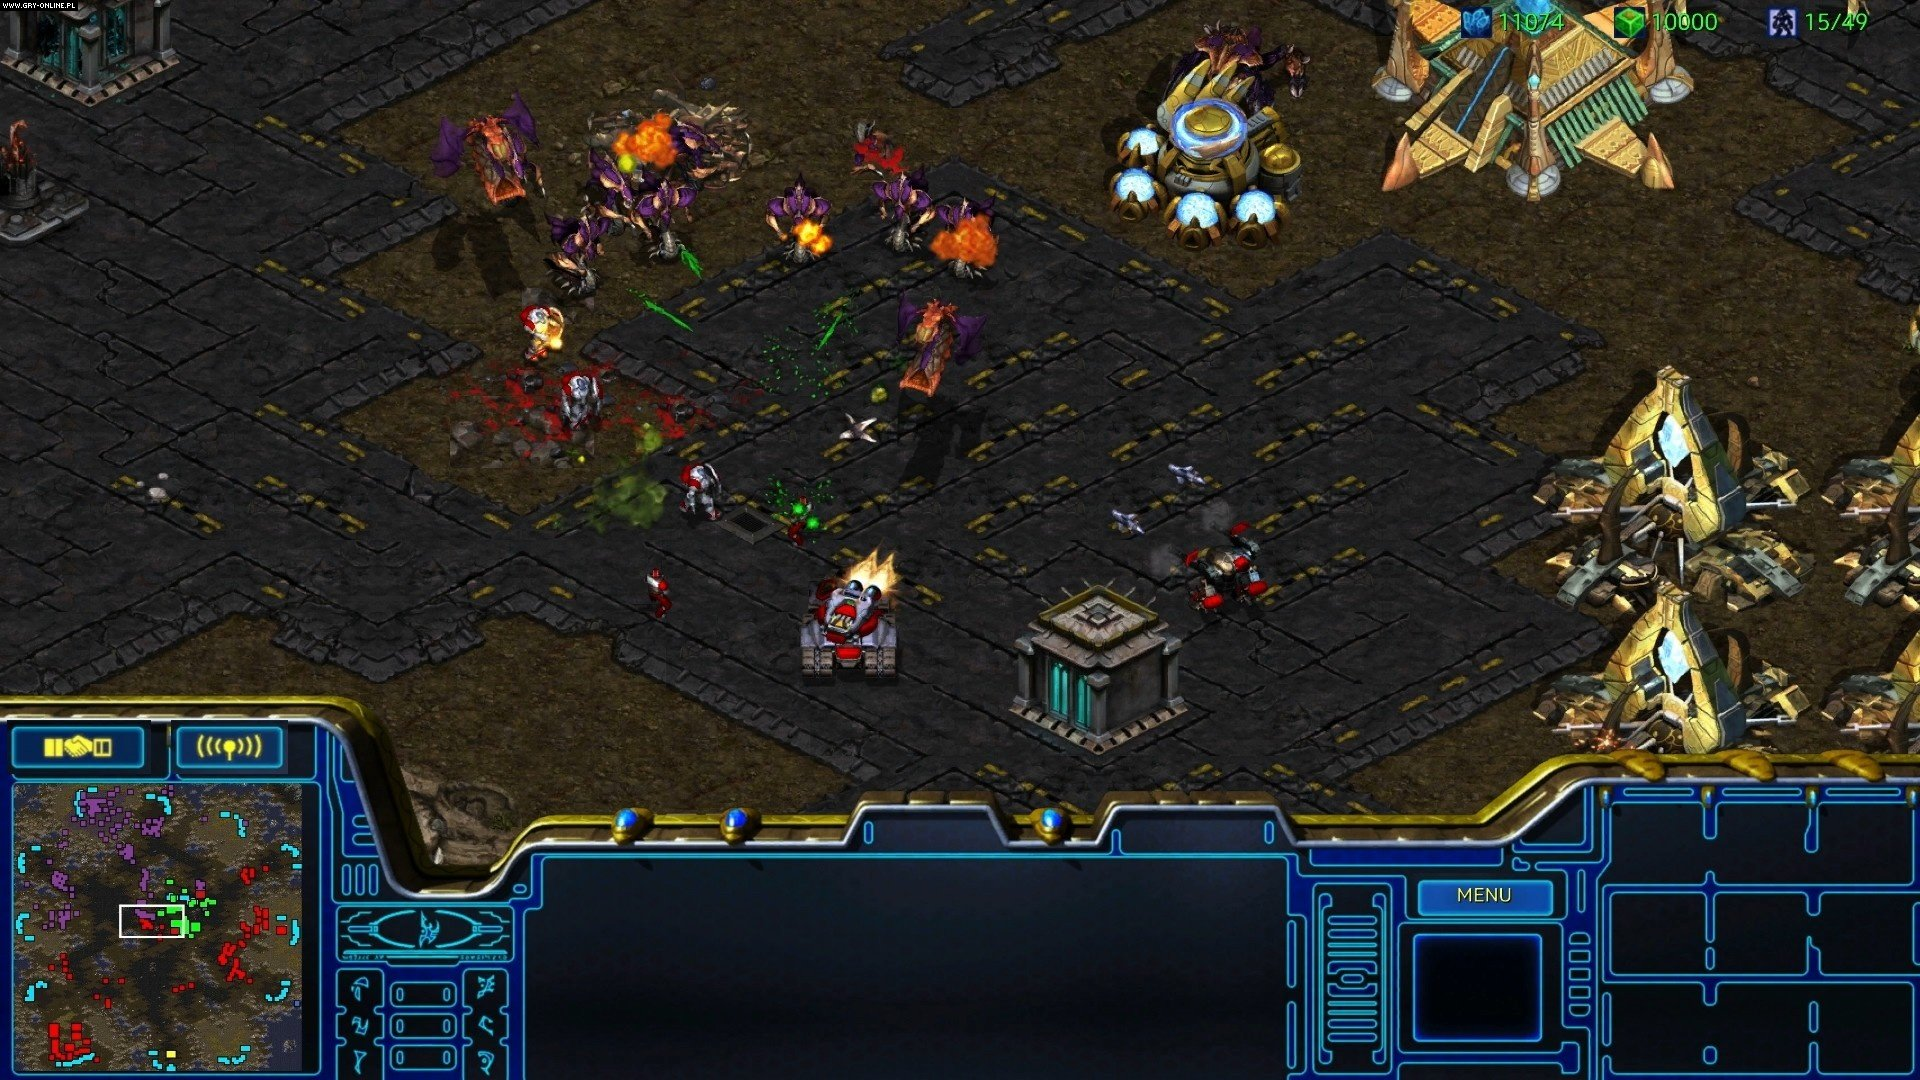 StarCraft: Remastered PC Gry Screen 7/15, Blizzard Entertainment